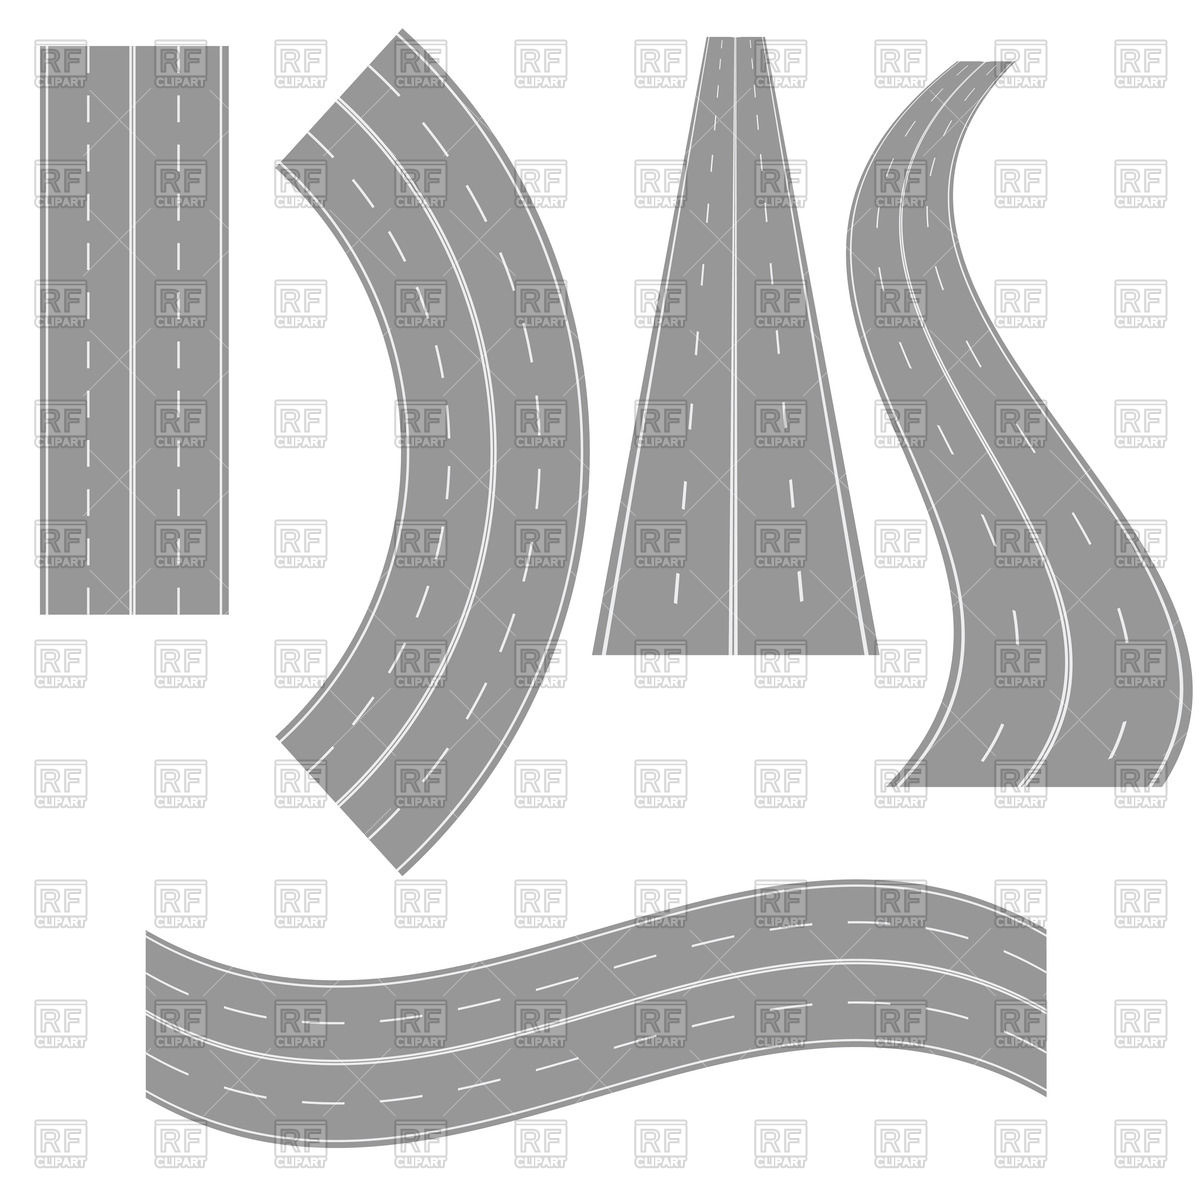 Road s clipart graphic black and white download Different shapes roads Vector Image #63735 – RFclipart graphic black and white download